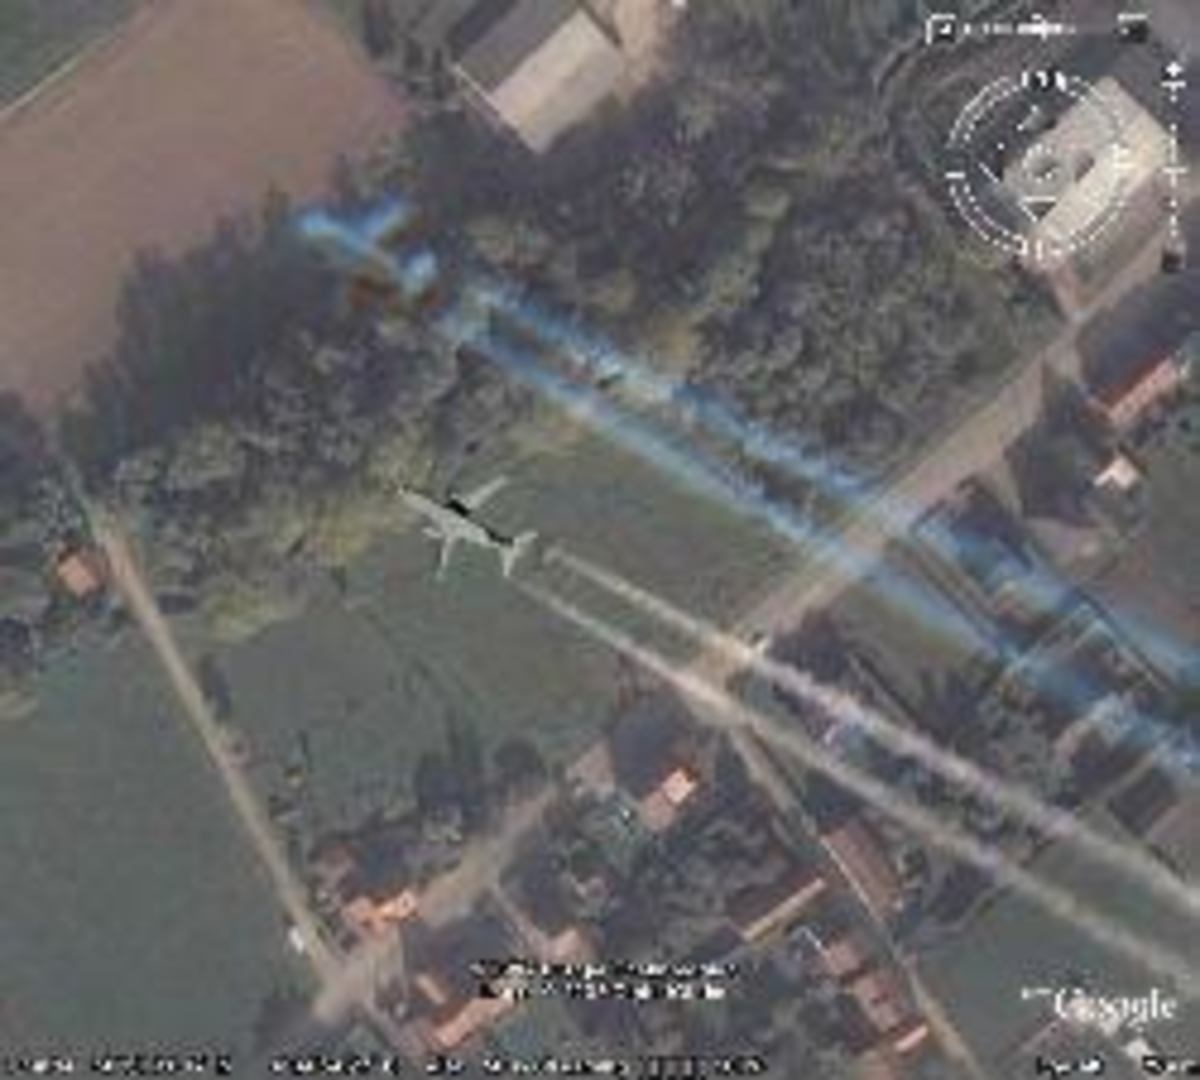 Ghostly trail of phantom aircraft taken from Google satellite picture.